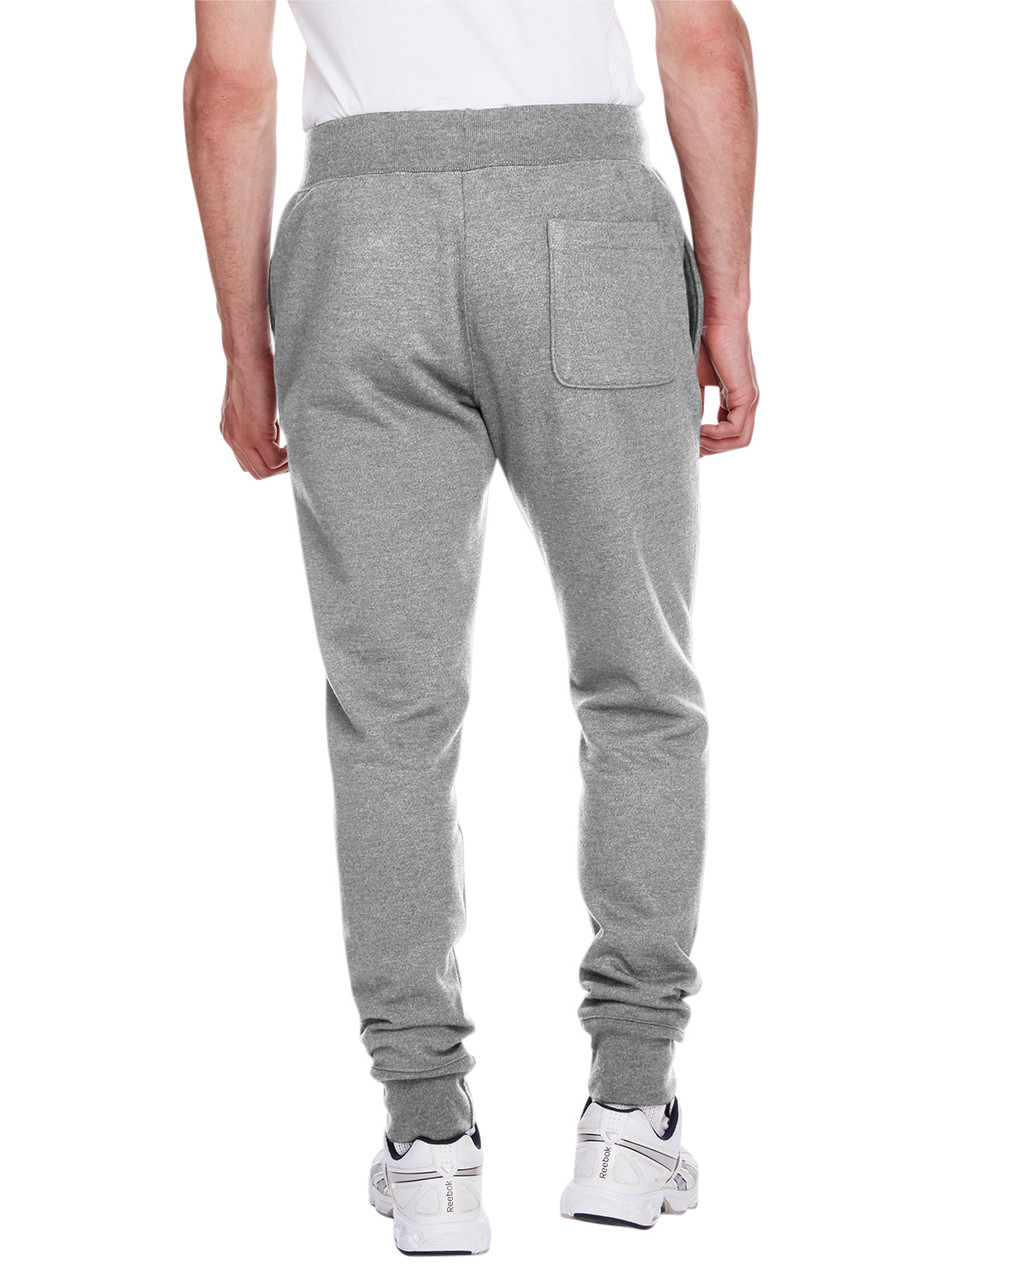 Oxford Grey - Back, RW25 Champion Men's Reverse Weave Jogger Pant | BlankClothing.ca